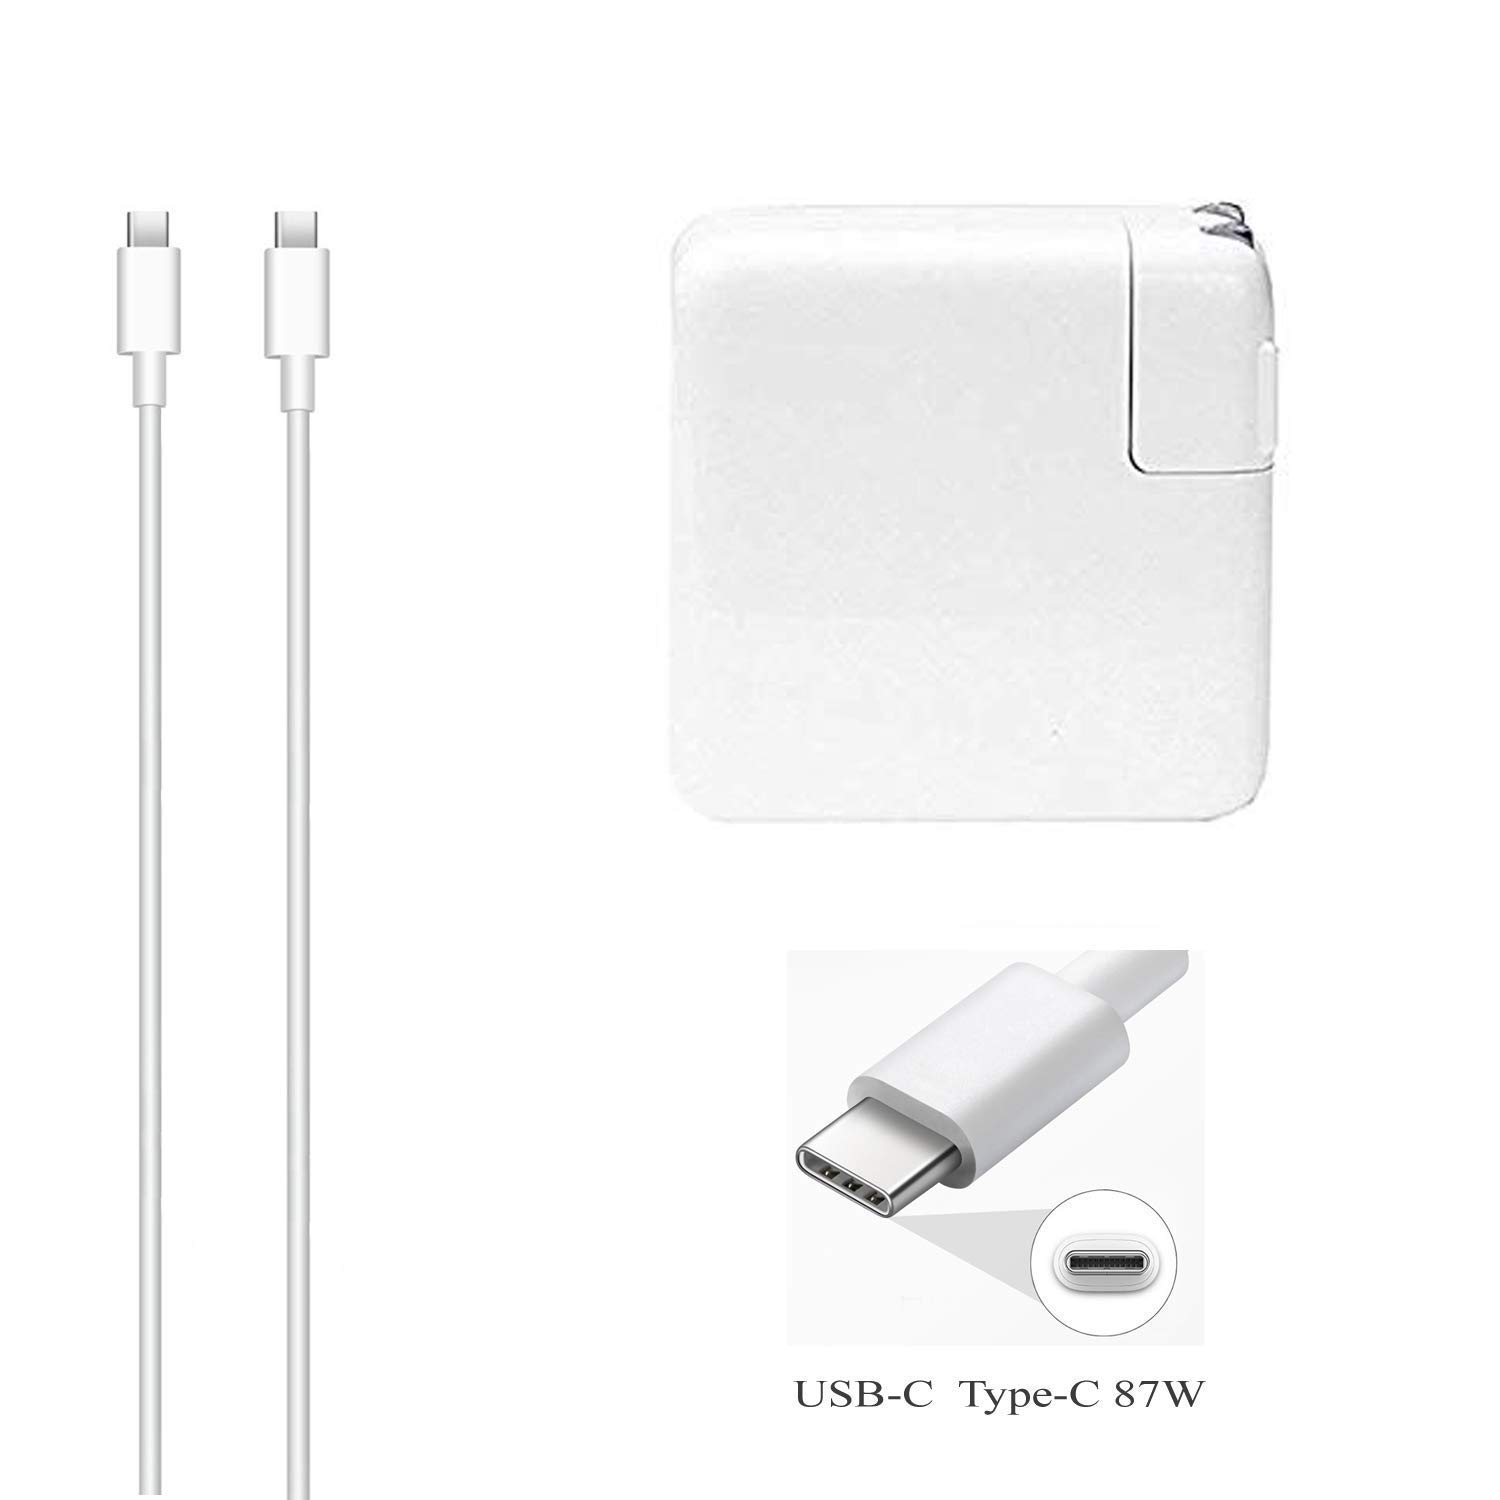 DTK 87W USB-C Type C Charger Compatible with New MacBook Pro Hp Acer Asus Lenovo Dell Huawei Matebook Laptop Smartphone Power Adapter